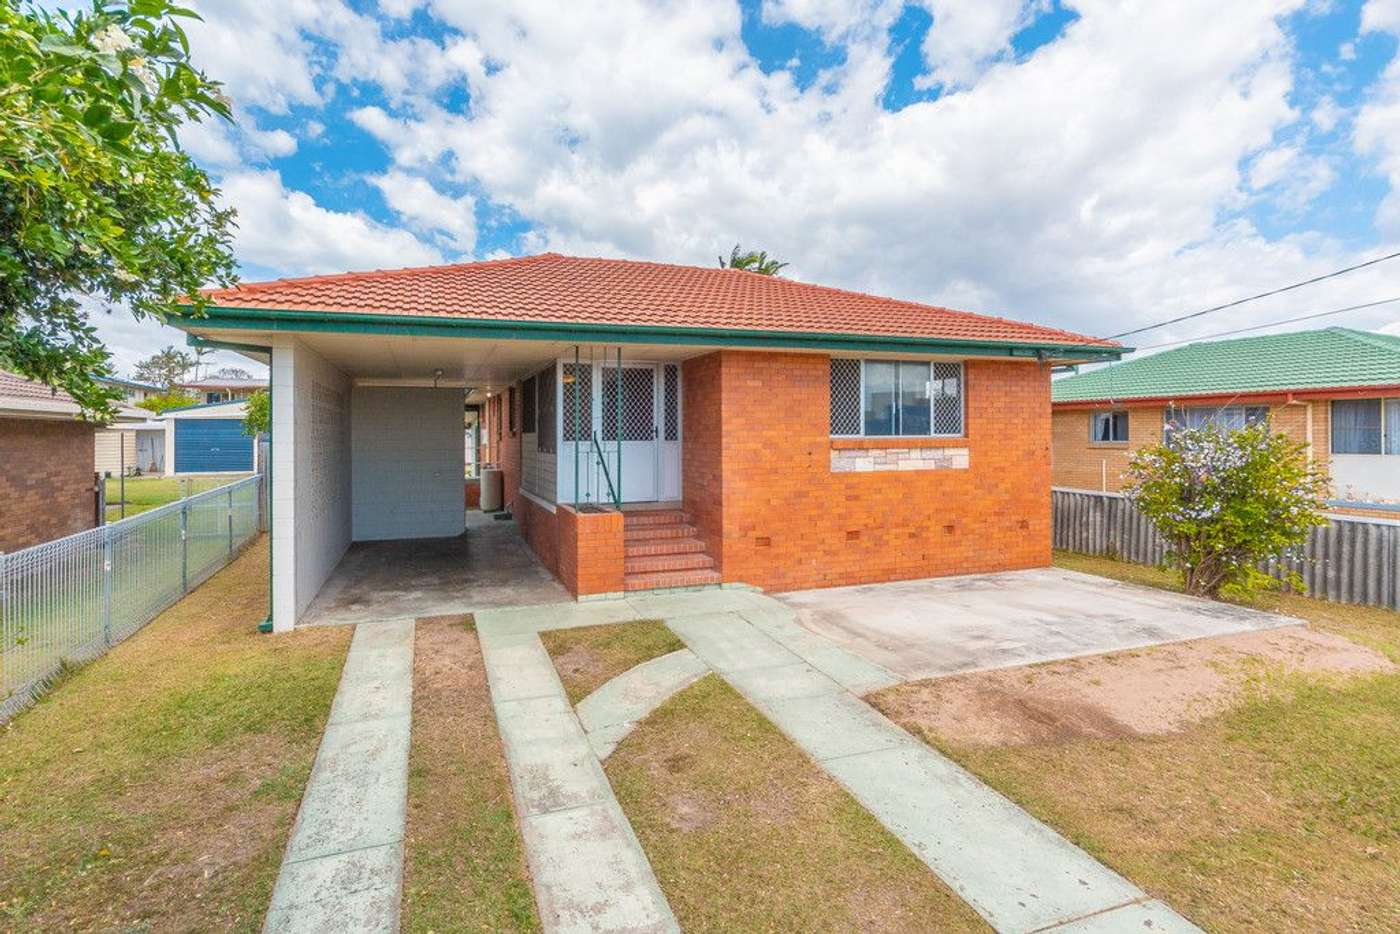 Main view of Homely house listing, 243 Anzac Avenue, Kippa-ring QLD 4021